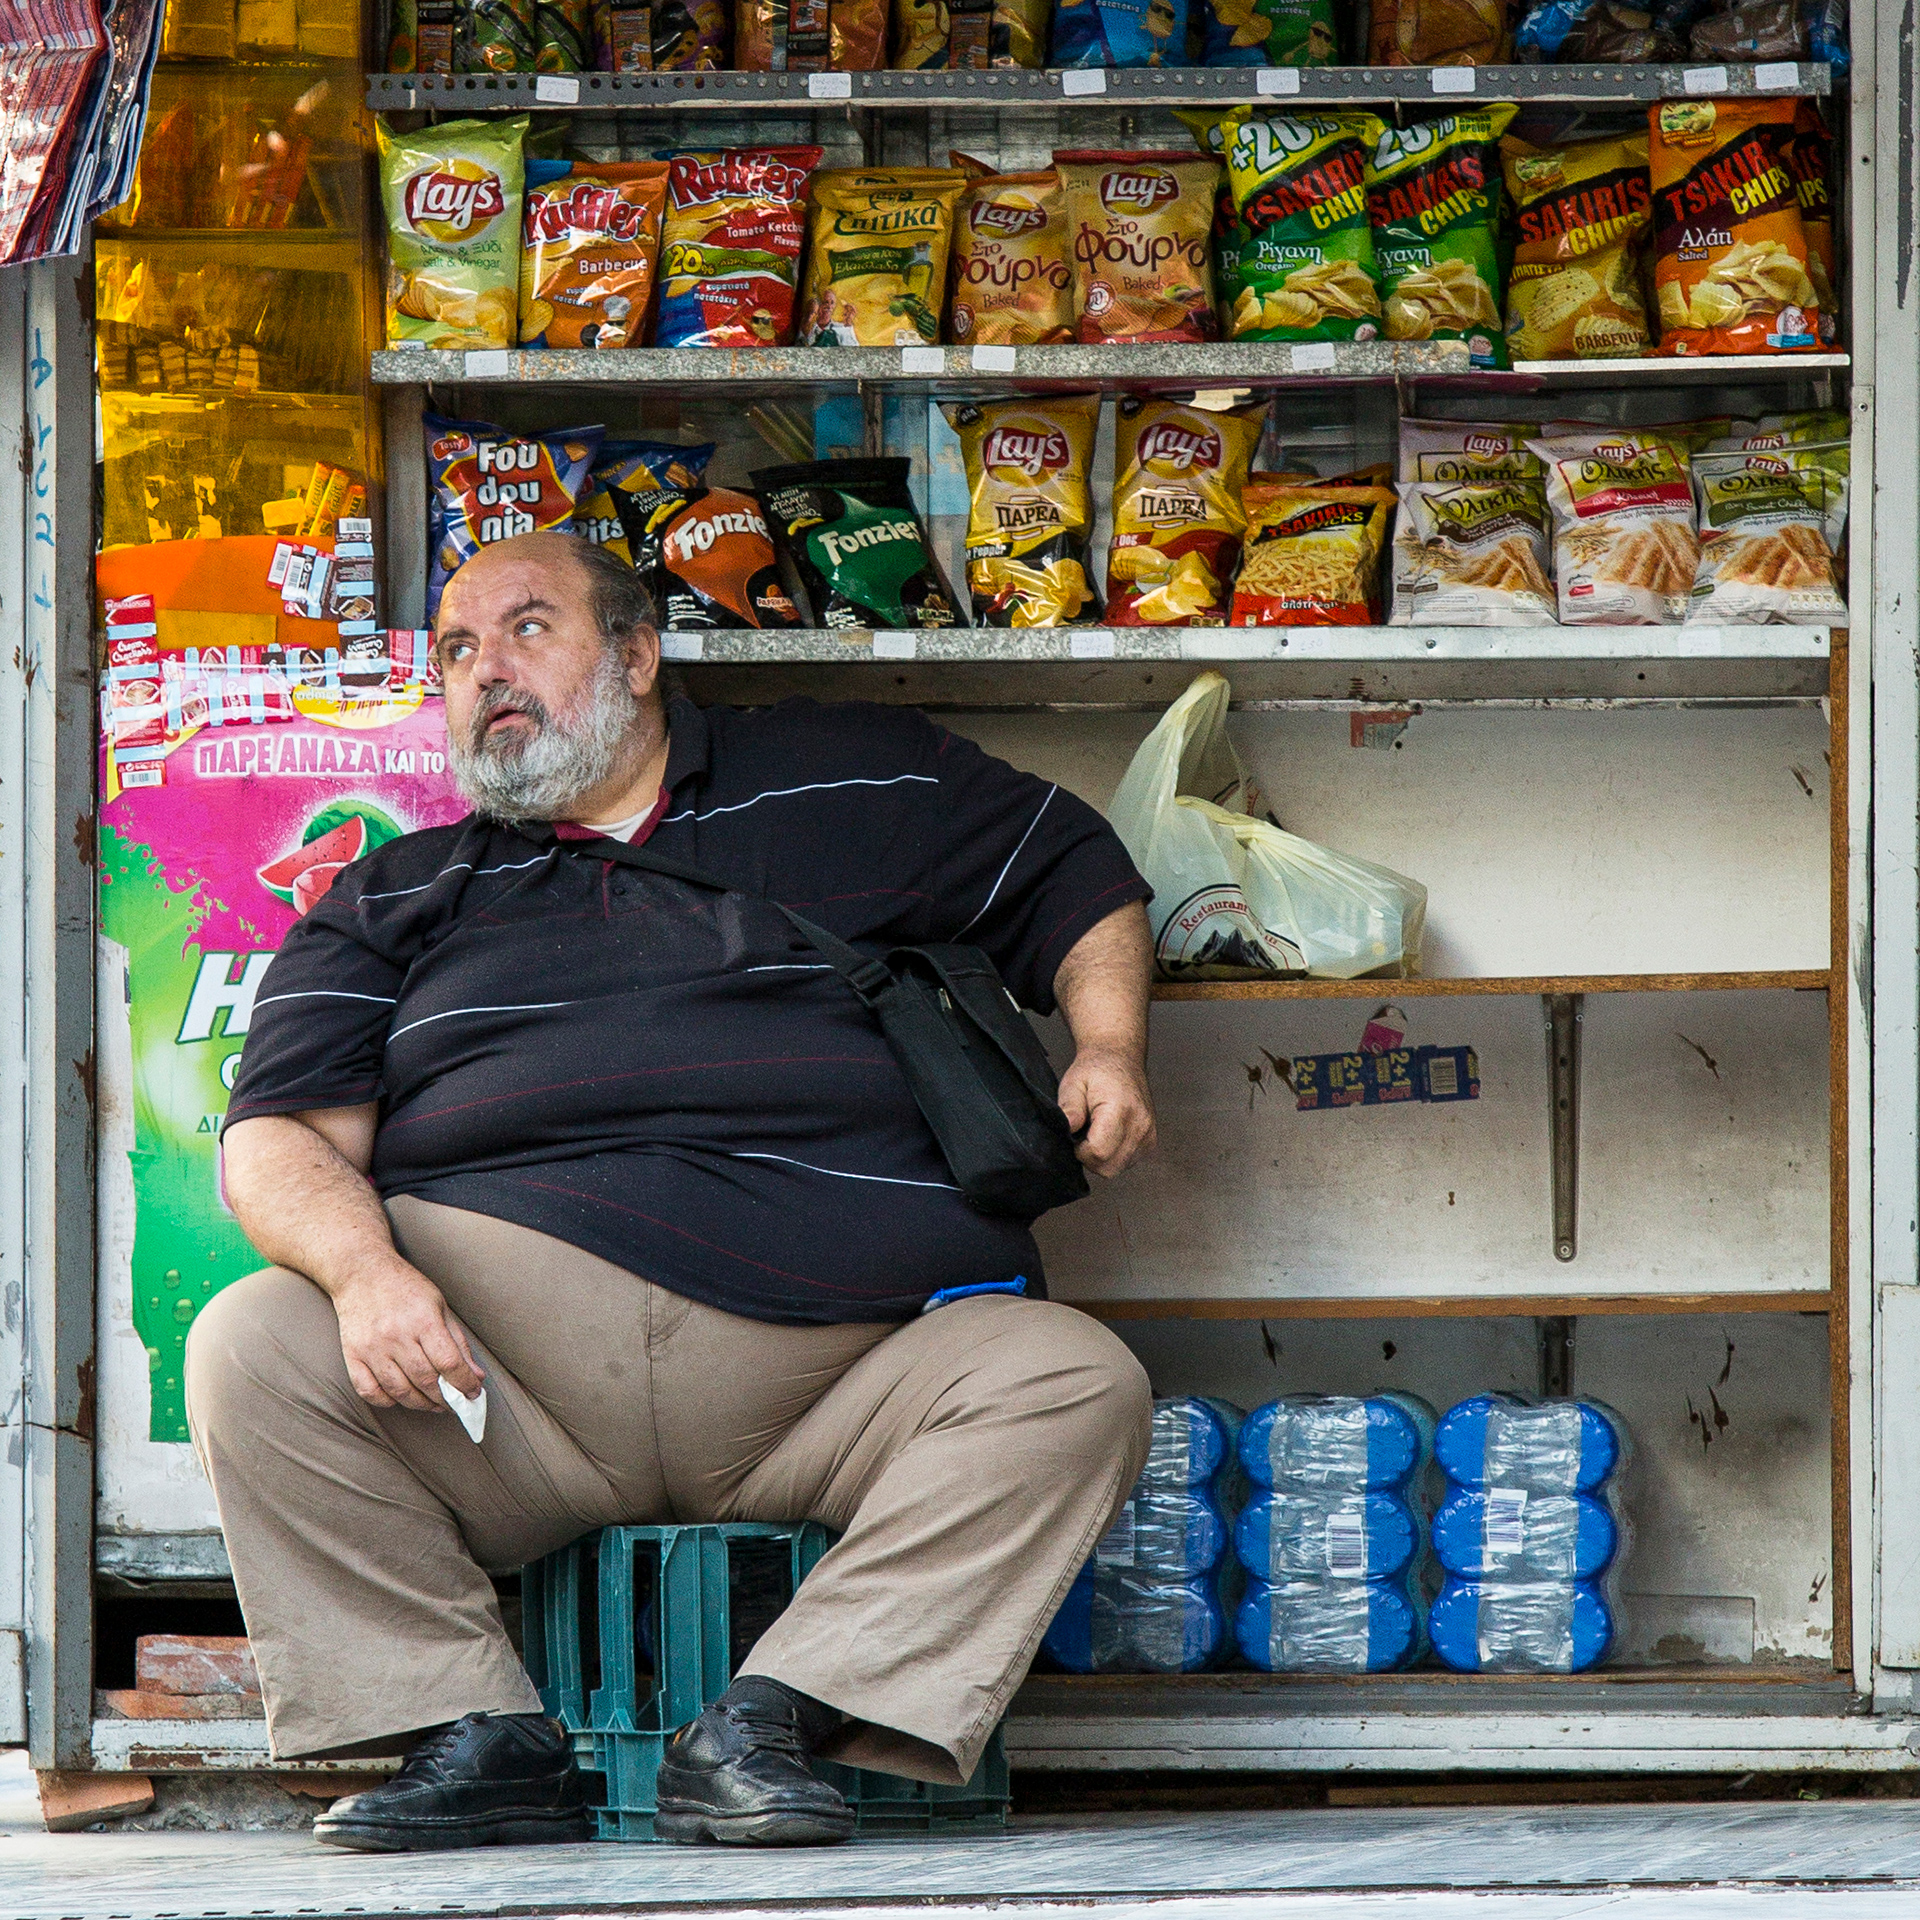 Chips seller, Athens, Greece, Greek, fat, overweight, merchant, crisps, chubby